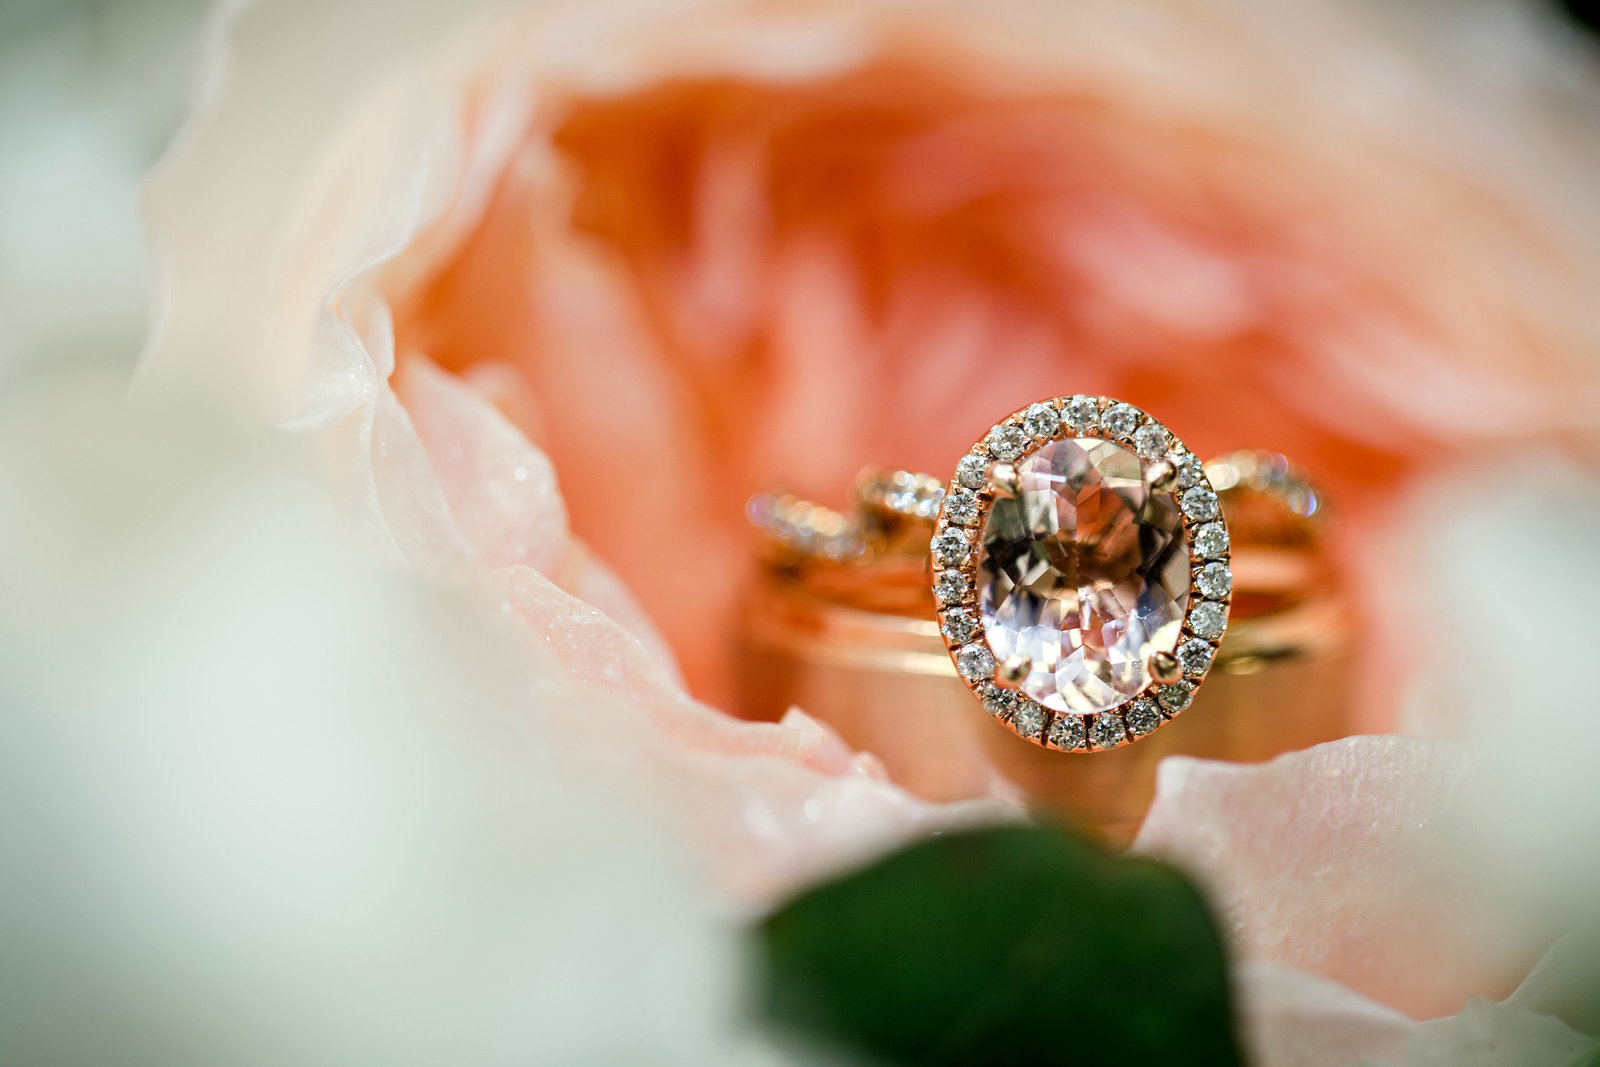 Gorgeous rose gold ring sitting in a pink flower by Knoxville Wedding Photographer, Amanda May Photos.